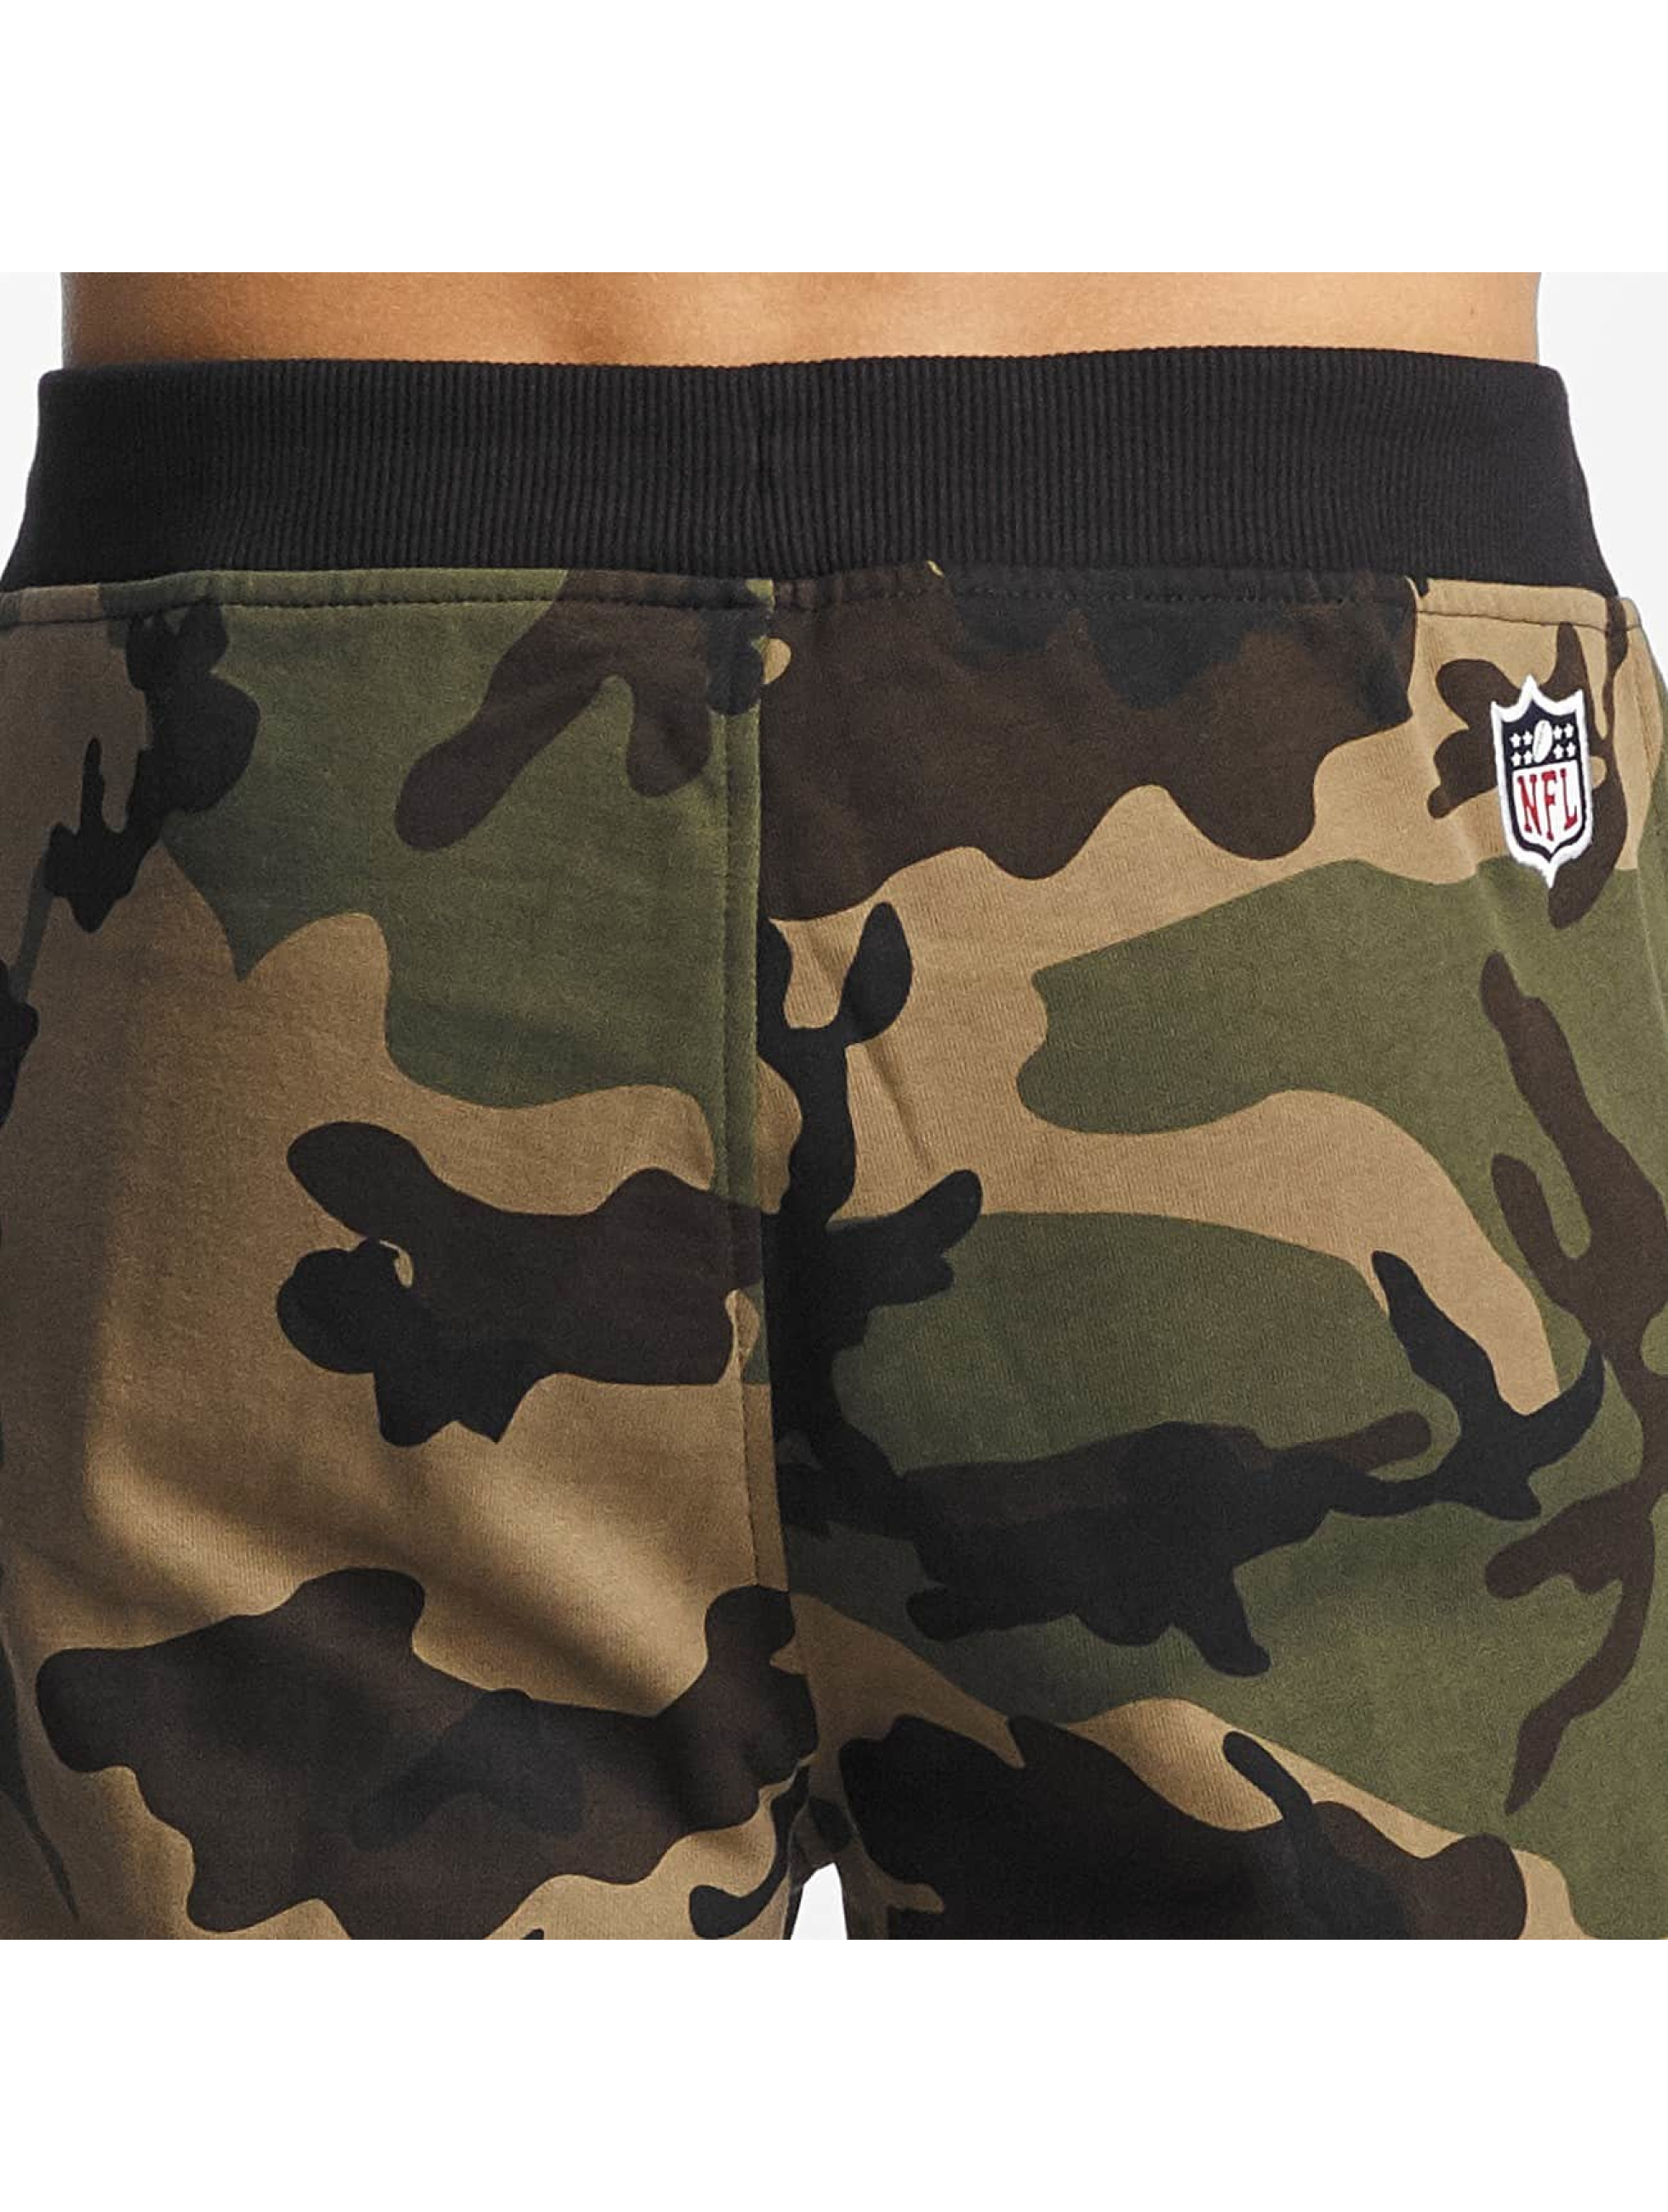 New Era joggingbroek Woodland New England Patriots camouflage